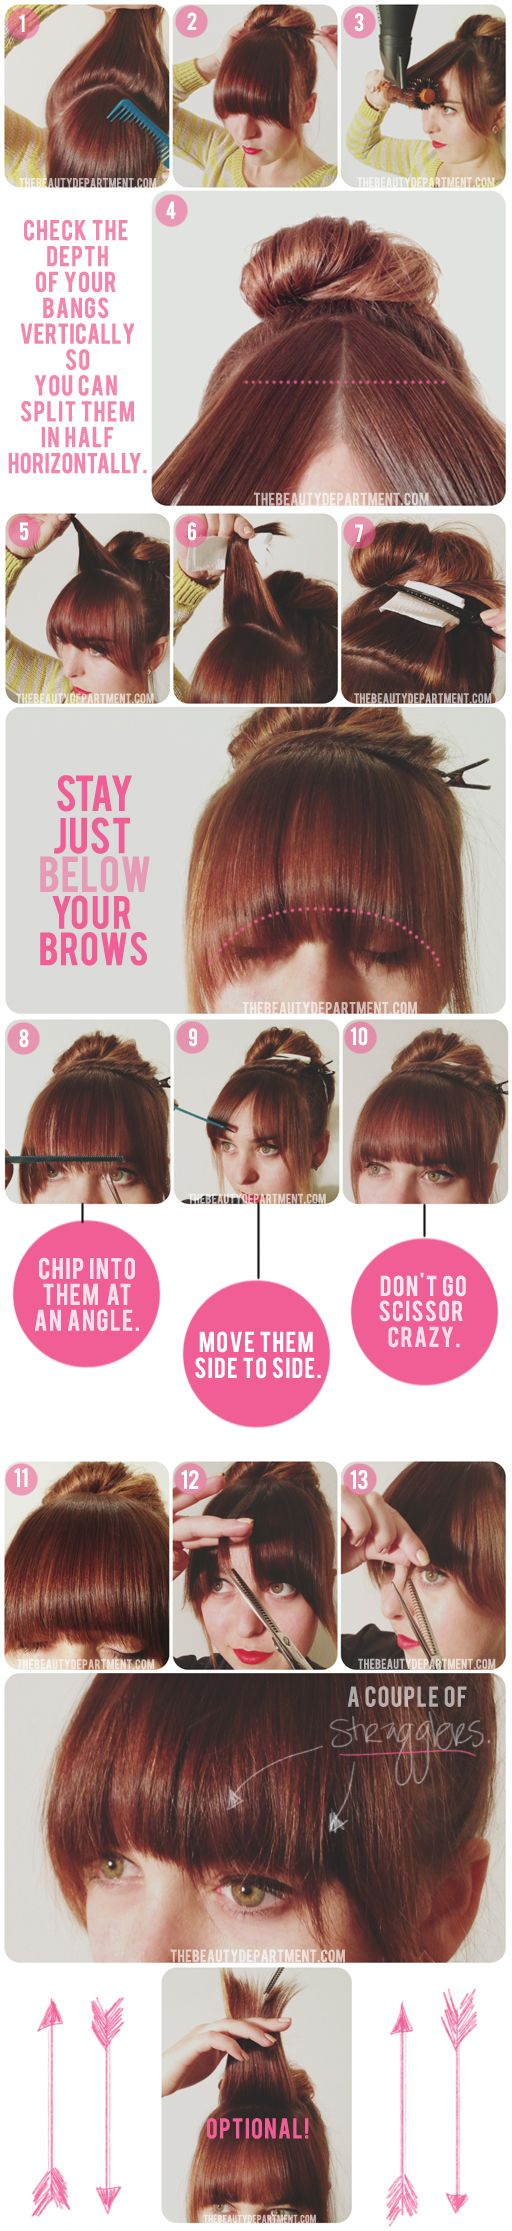 DIY bang trim